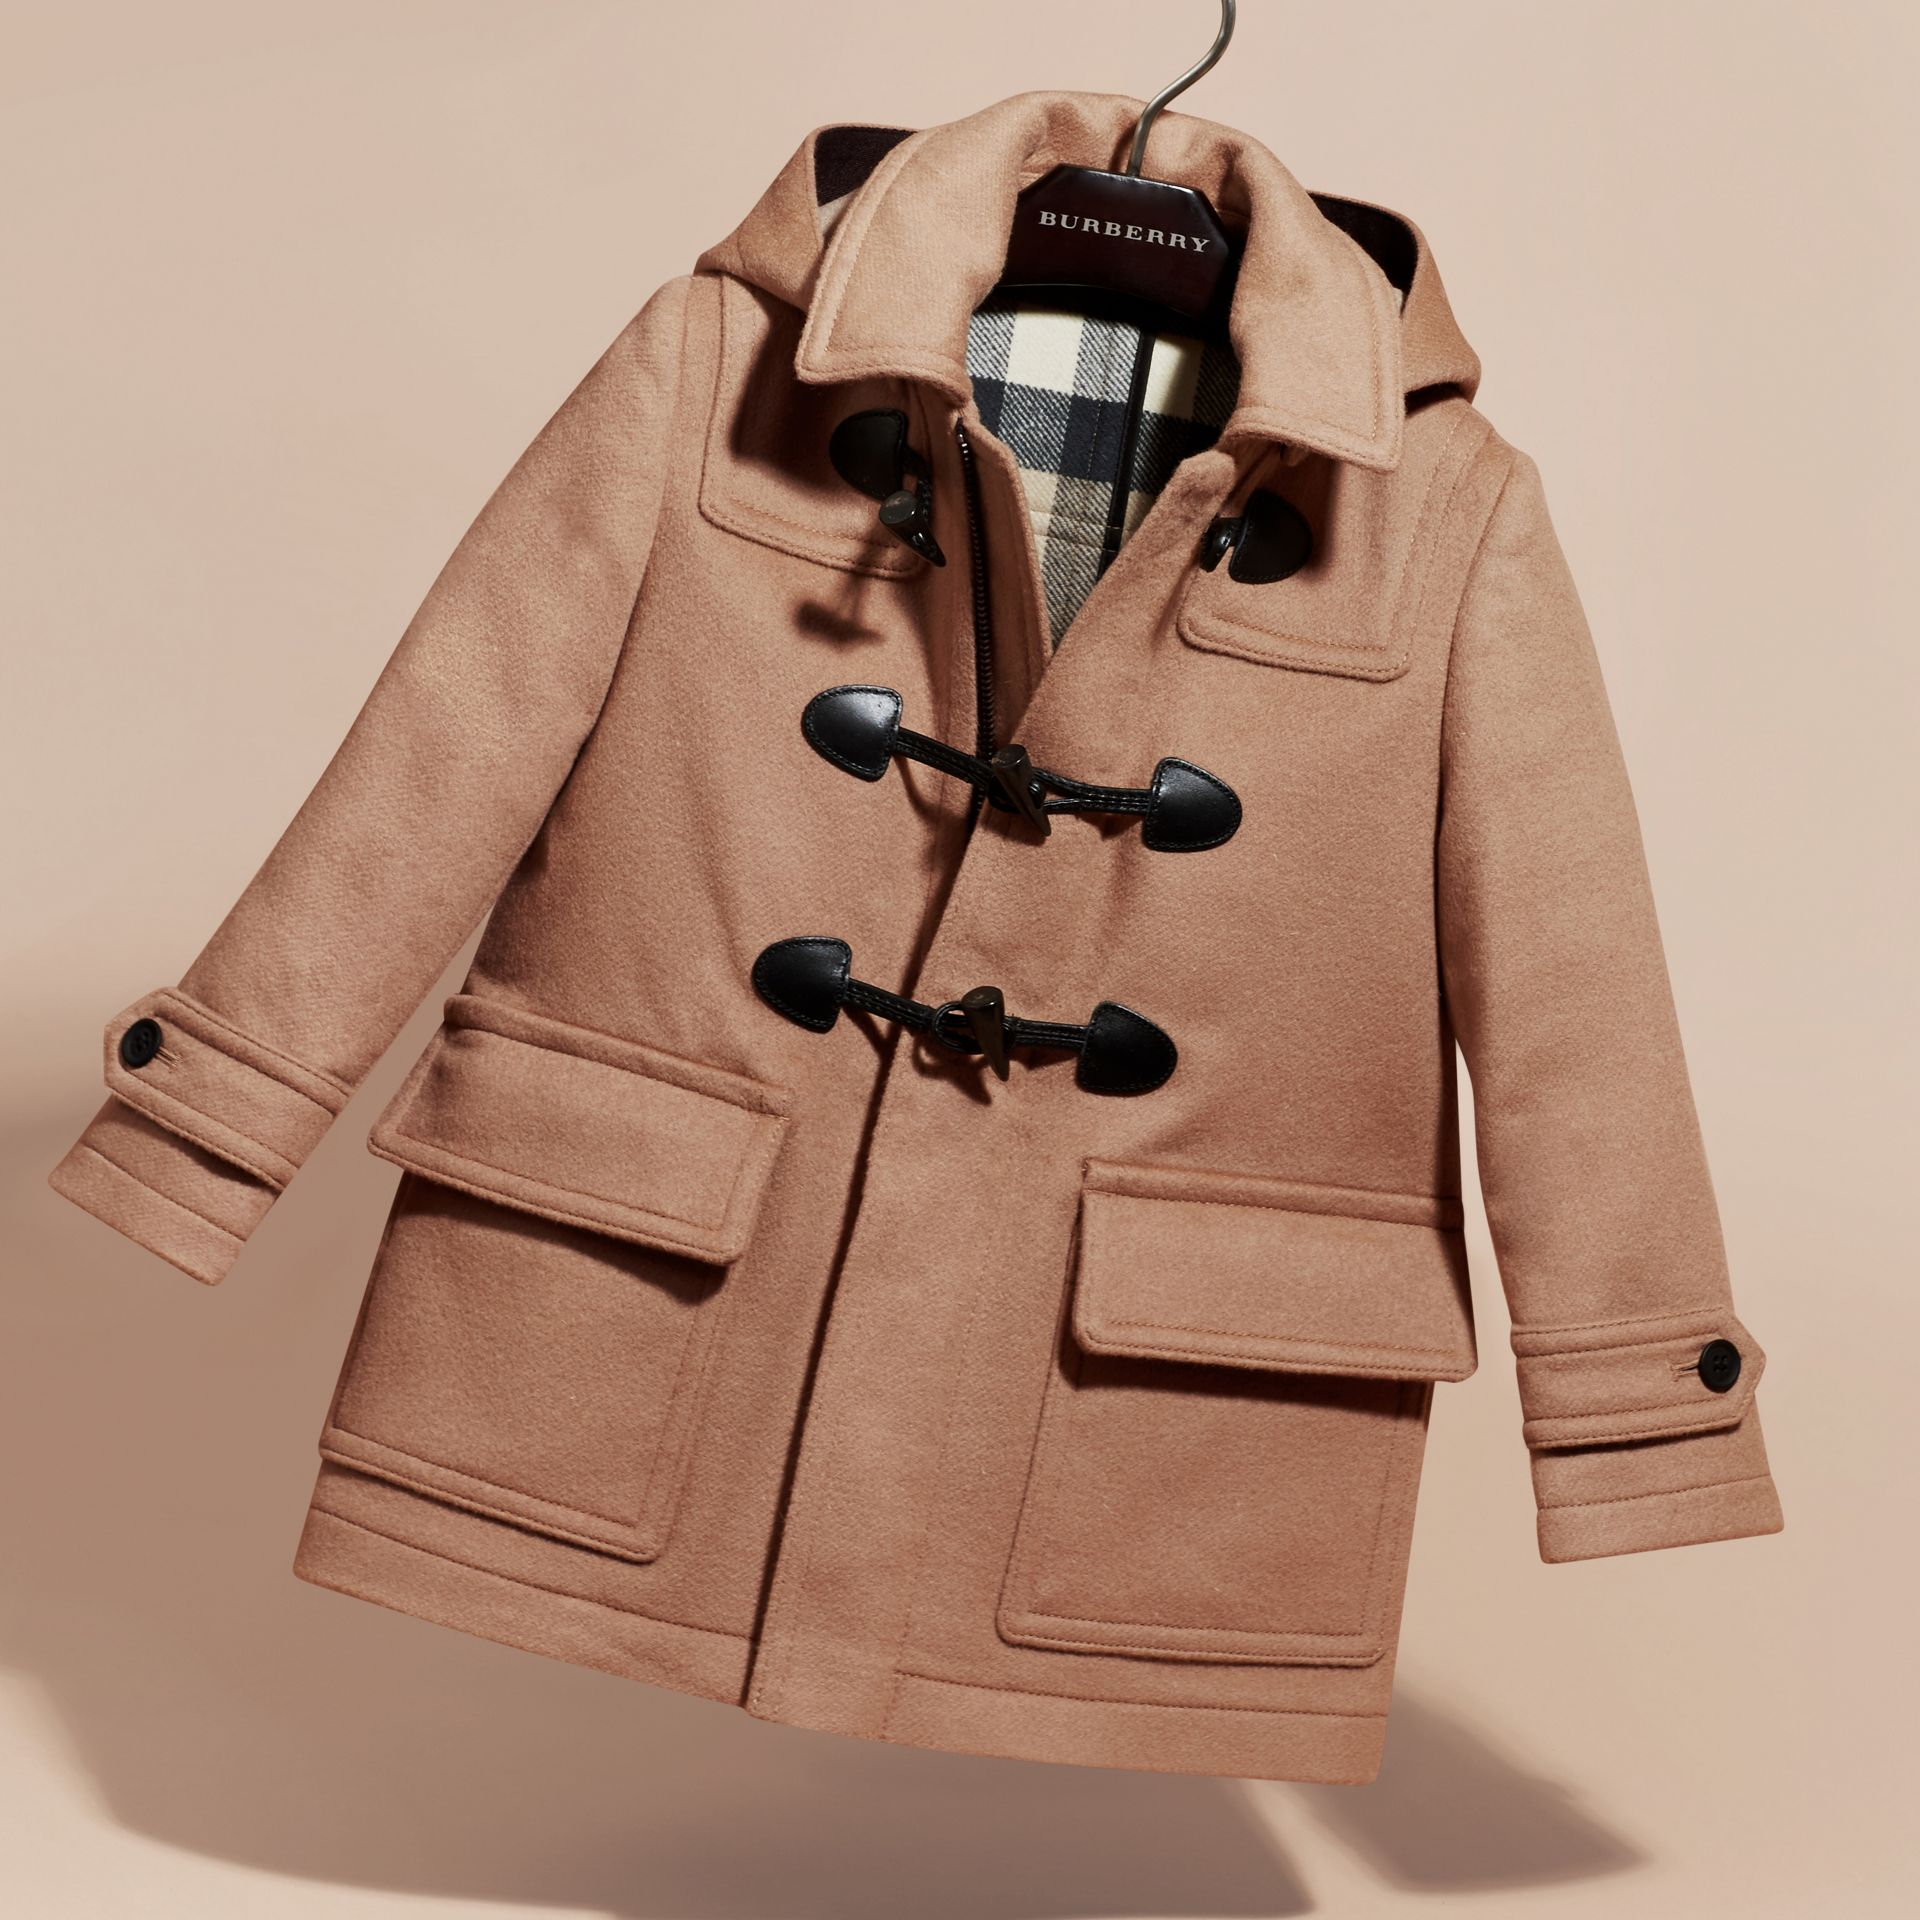 New camel Wool Duffle Coat with Check-lined Hood New Camel - gallery image 3